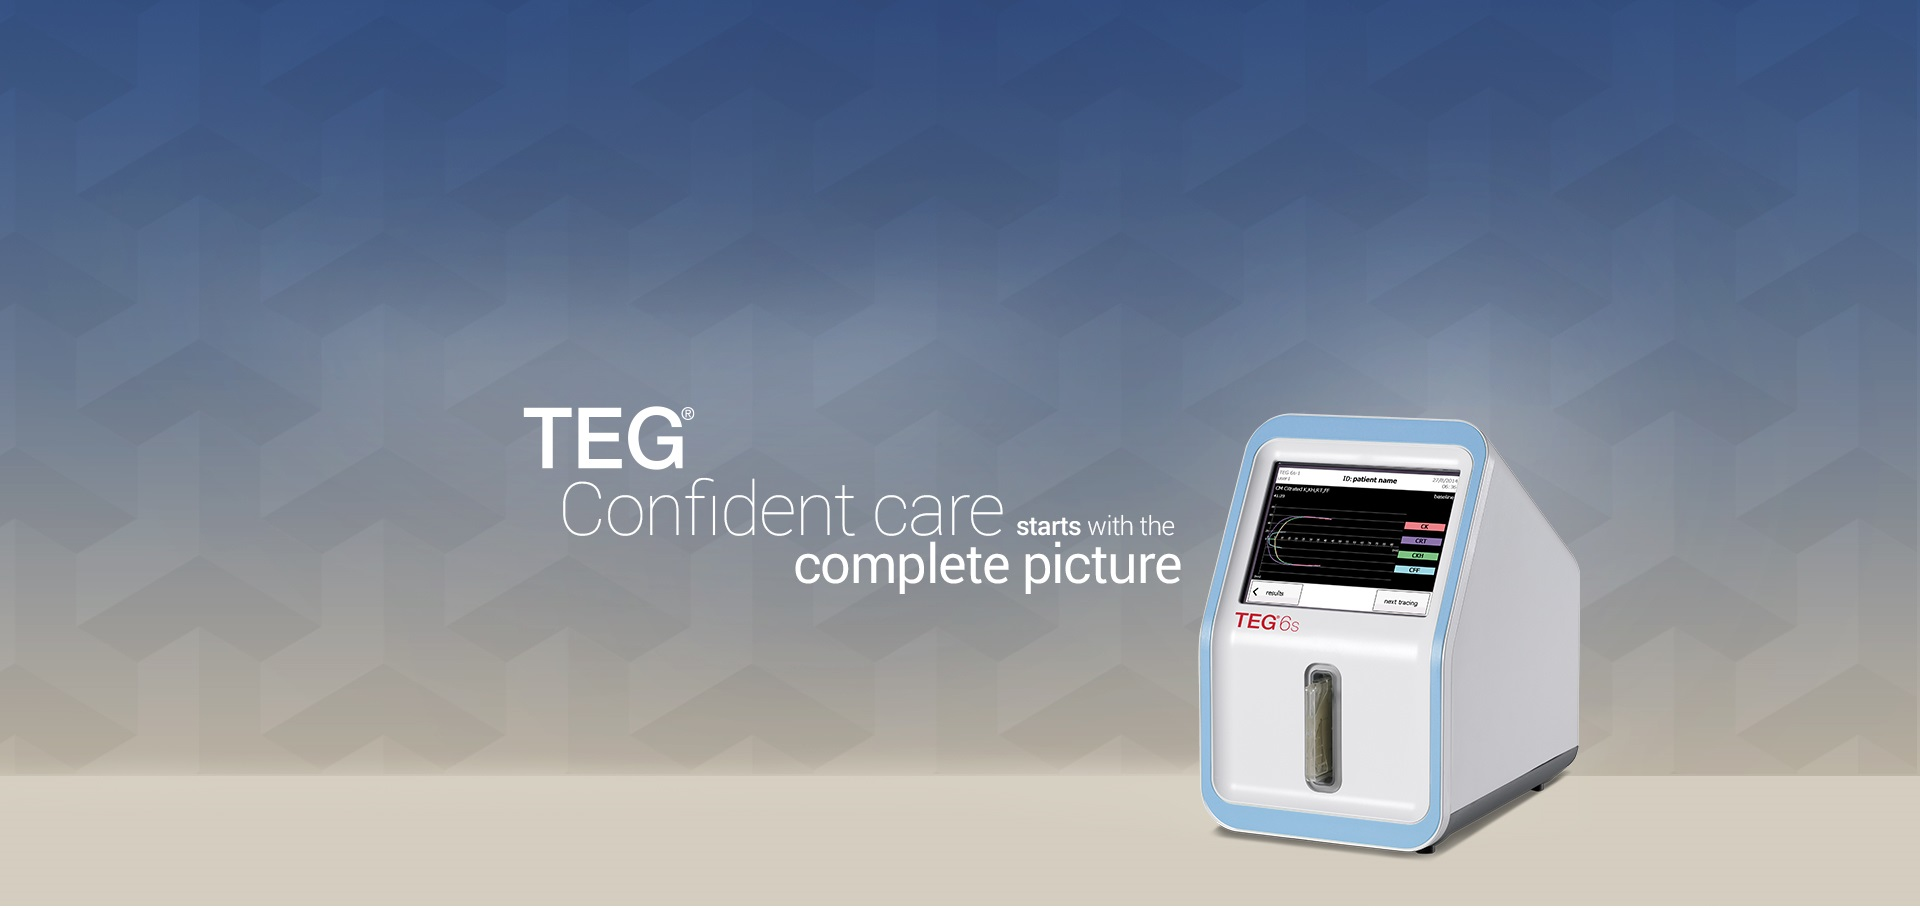 TEG: Confident care starts with the complete picture